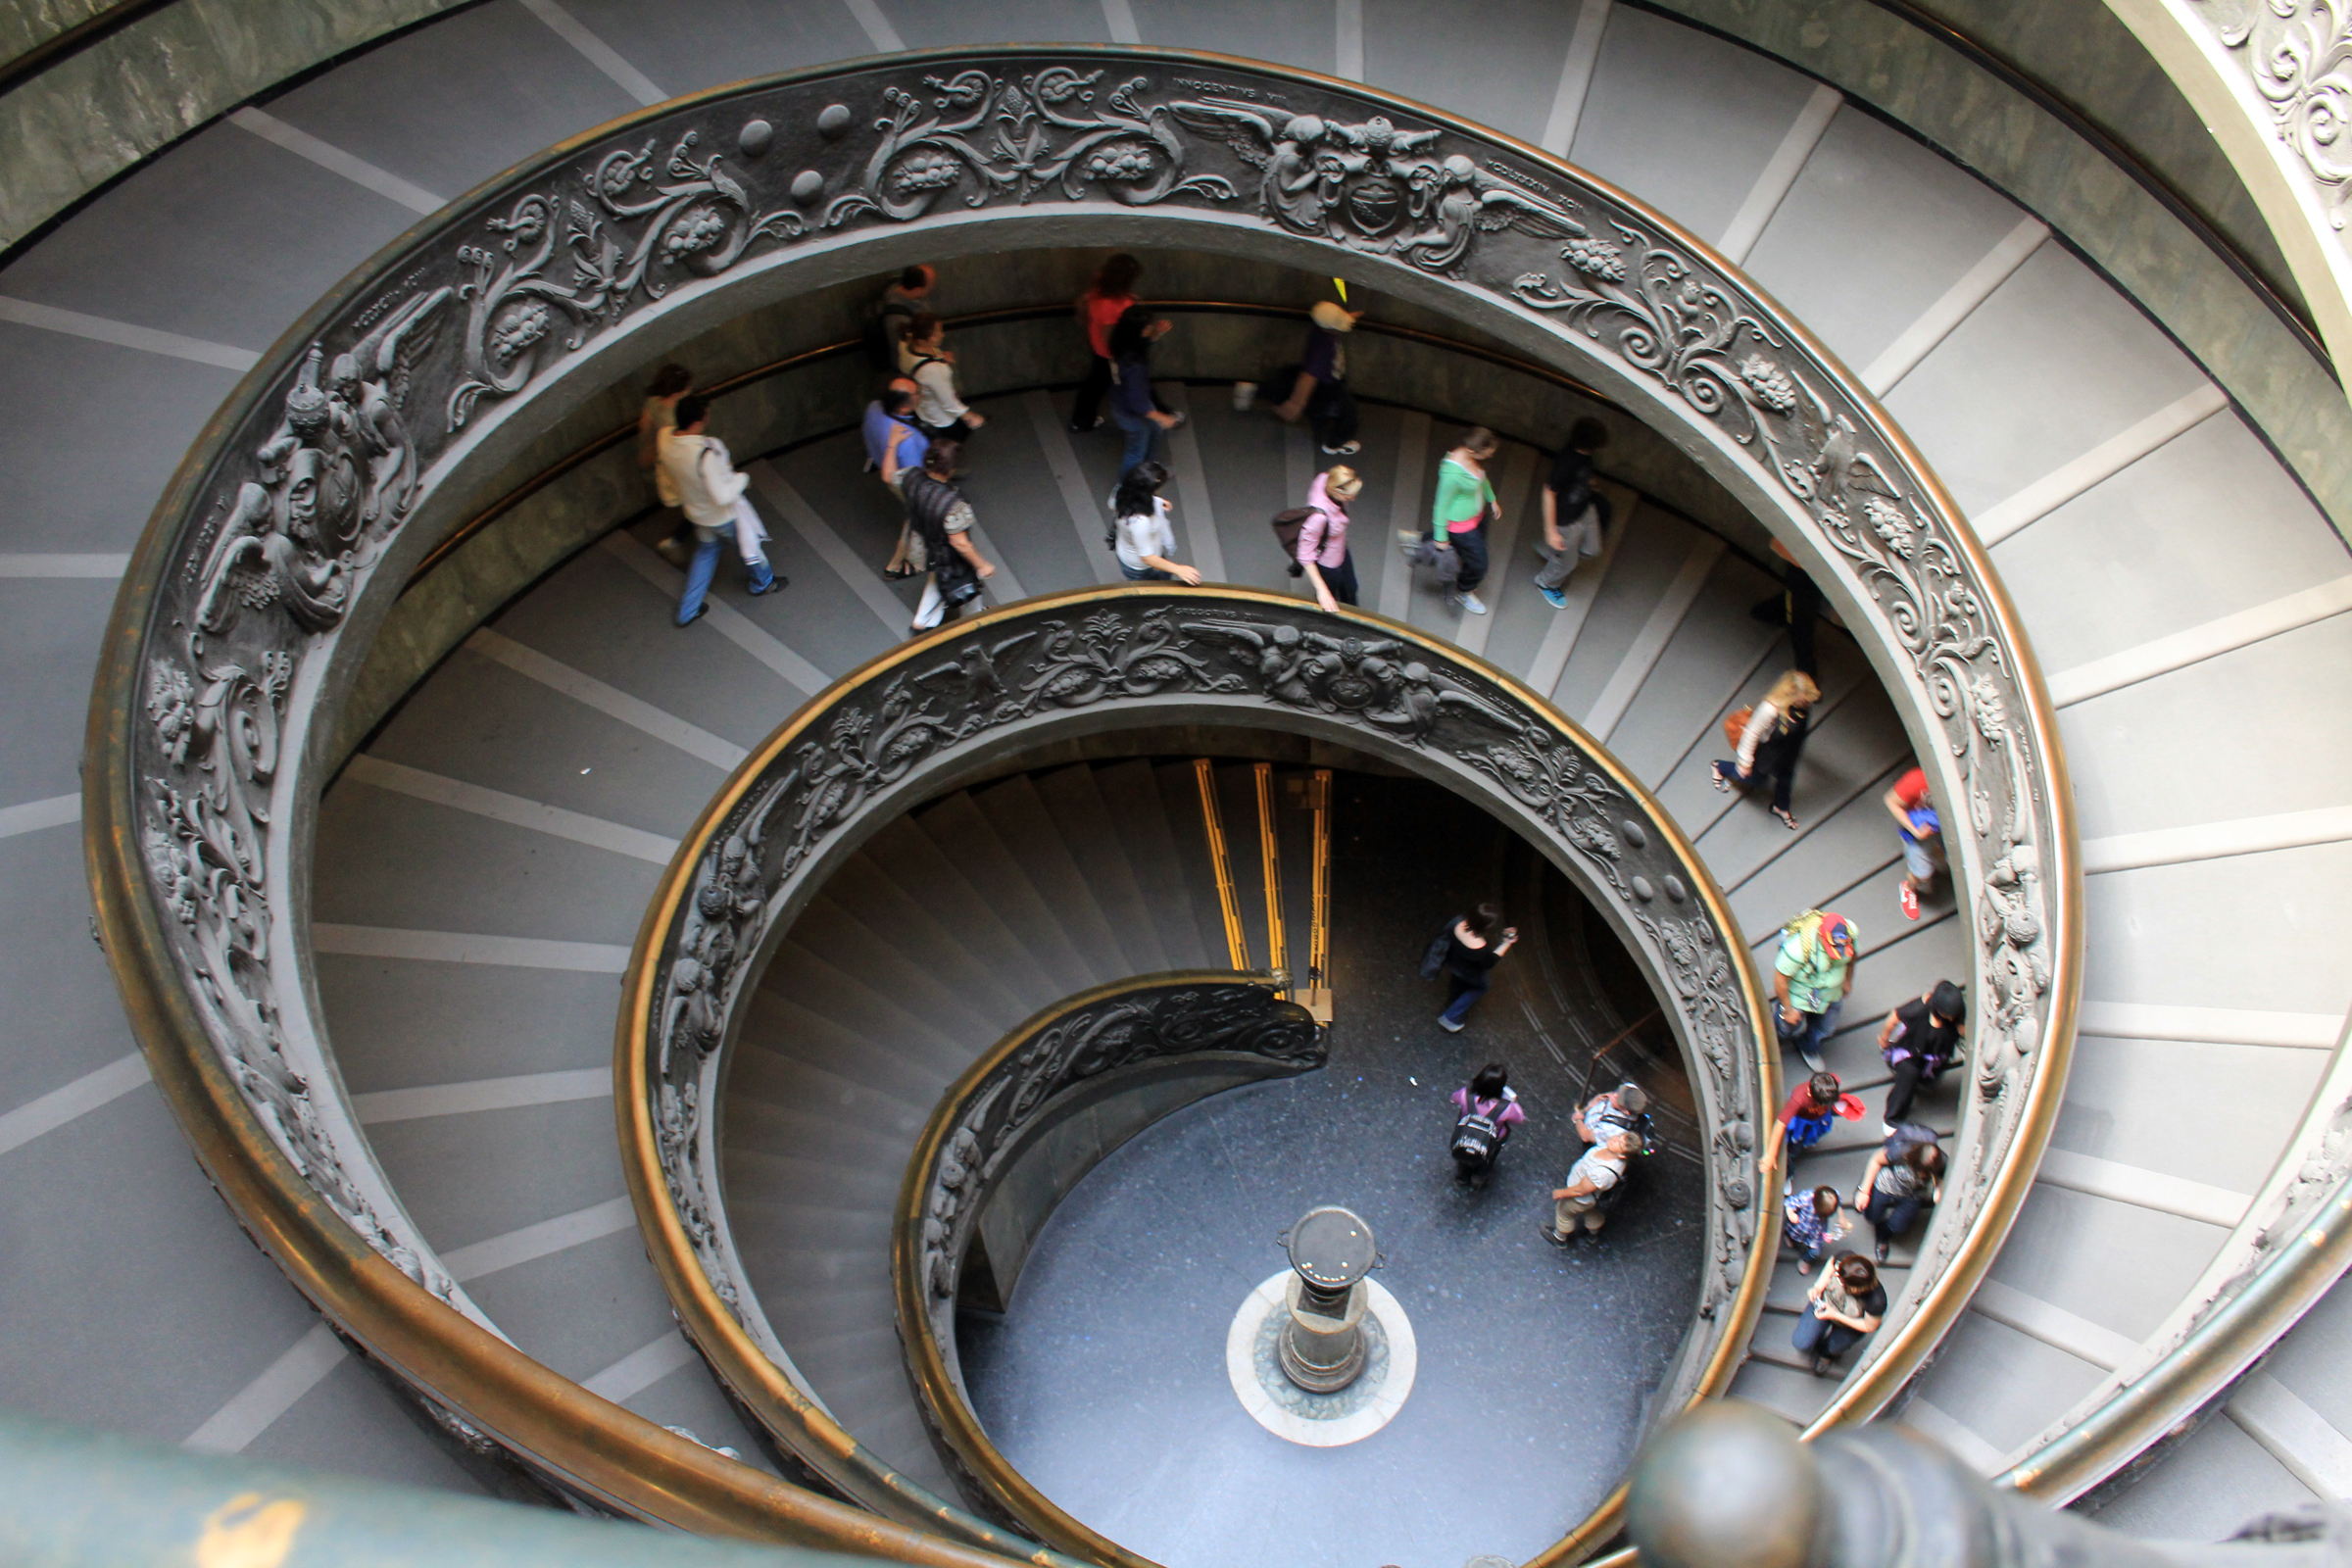 File:Spiral Staircase In The Vatican Museums 2011 04